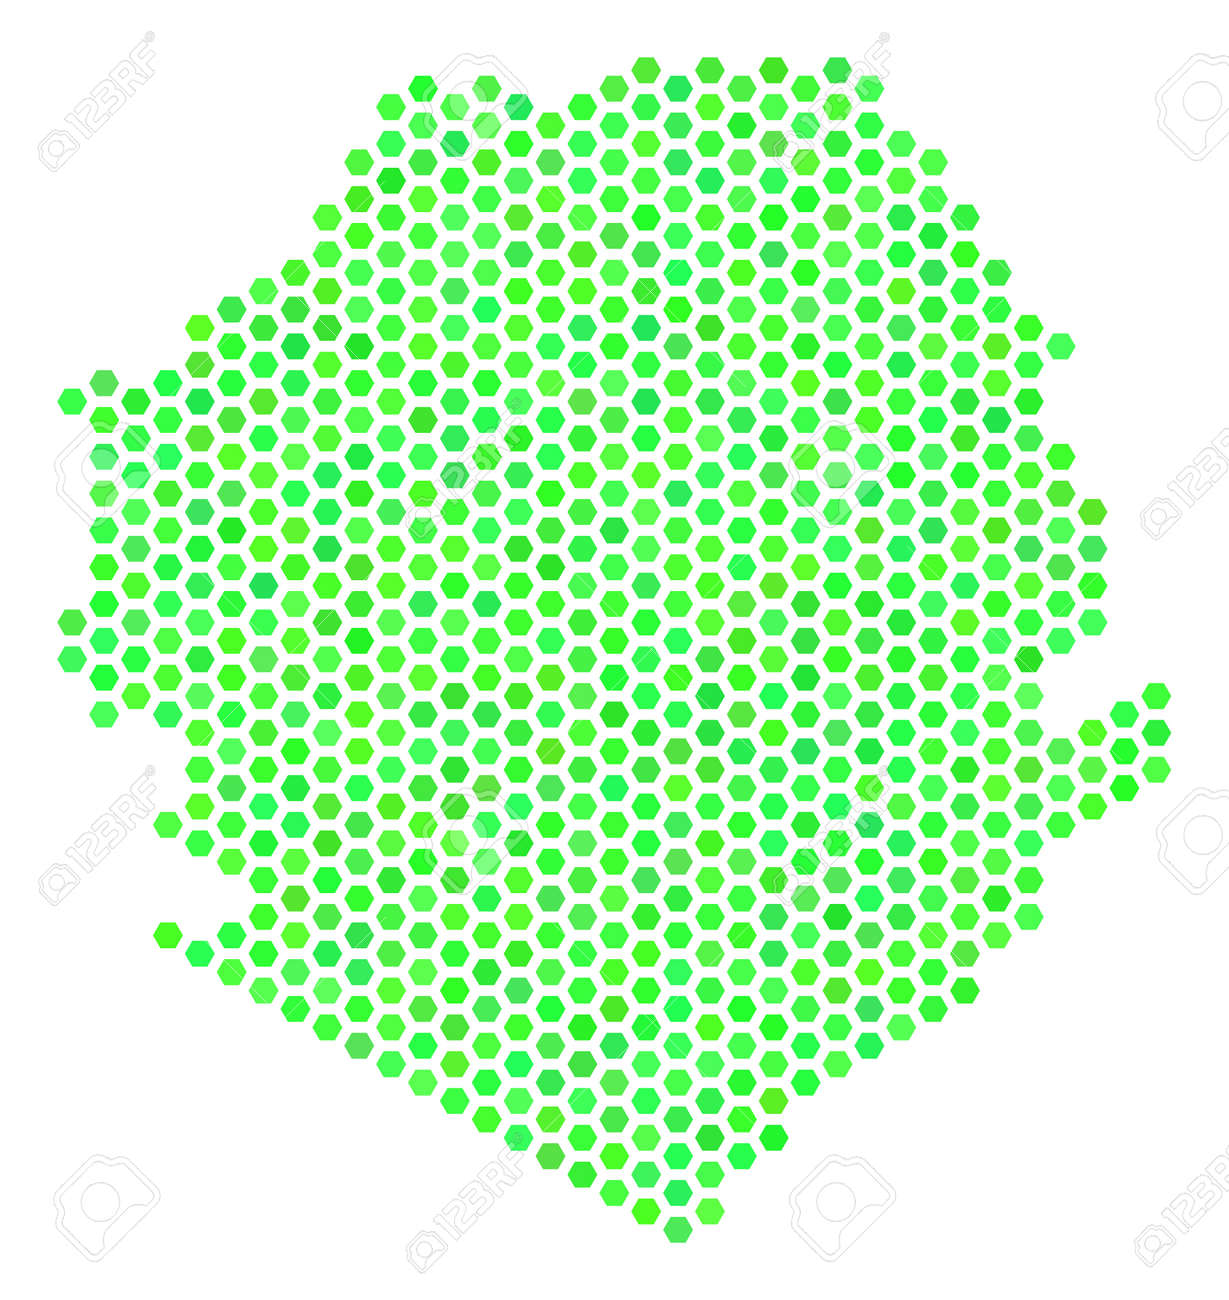 Eco Green Sierra Leone Map Vector Hex Tile Geographic Map Drawn